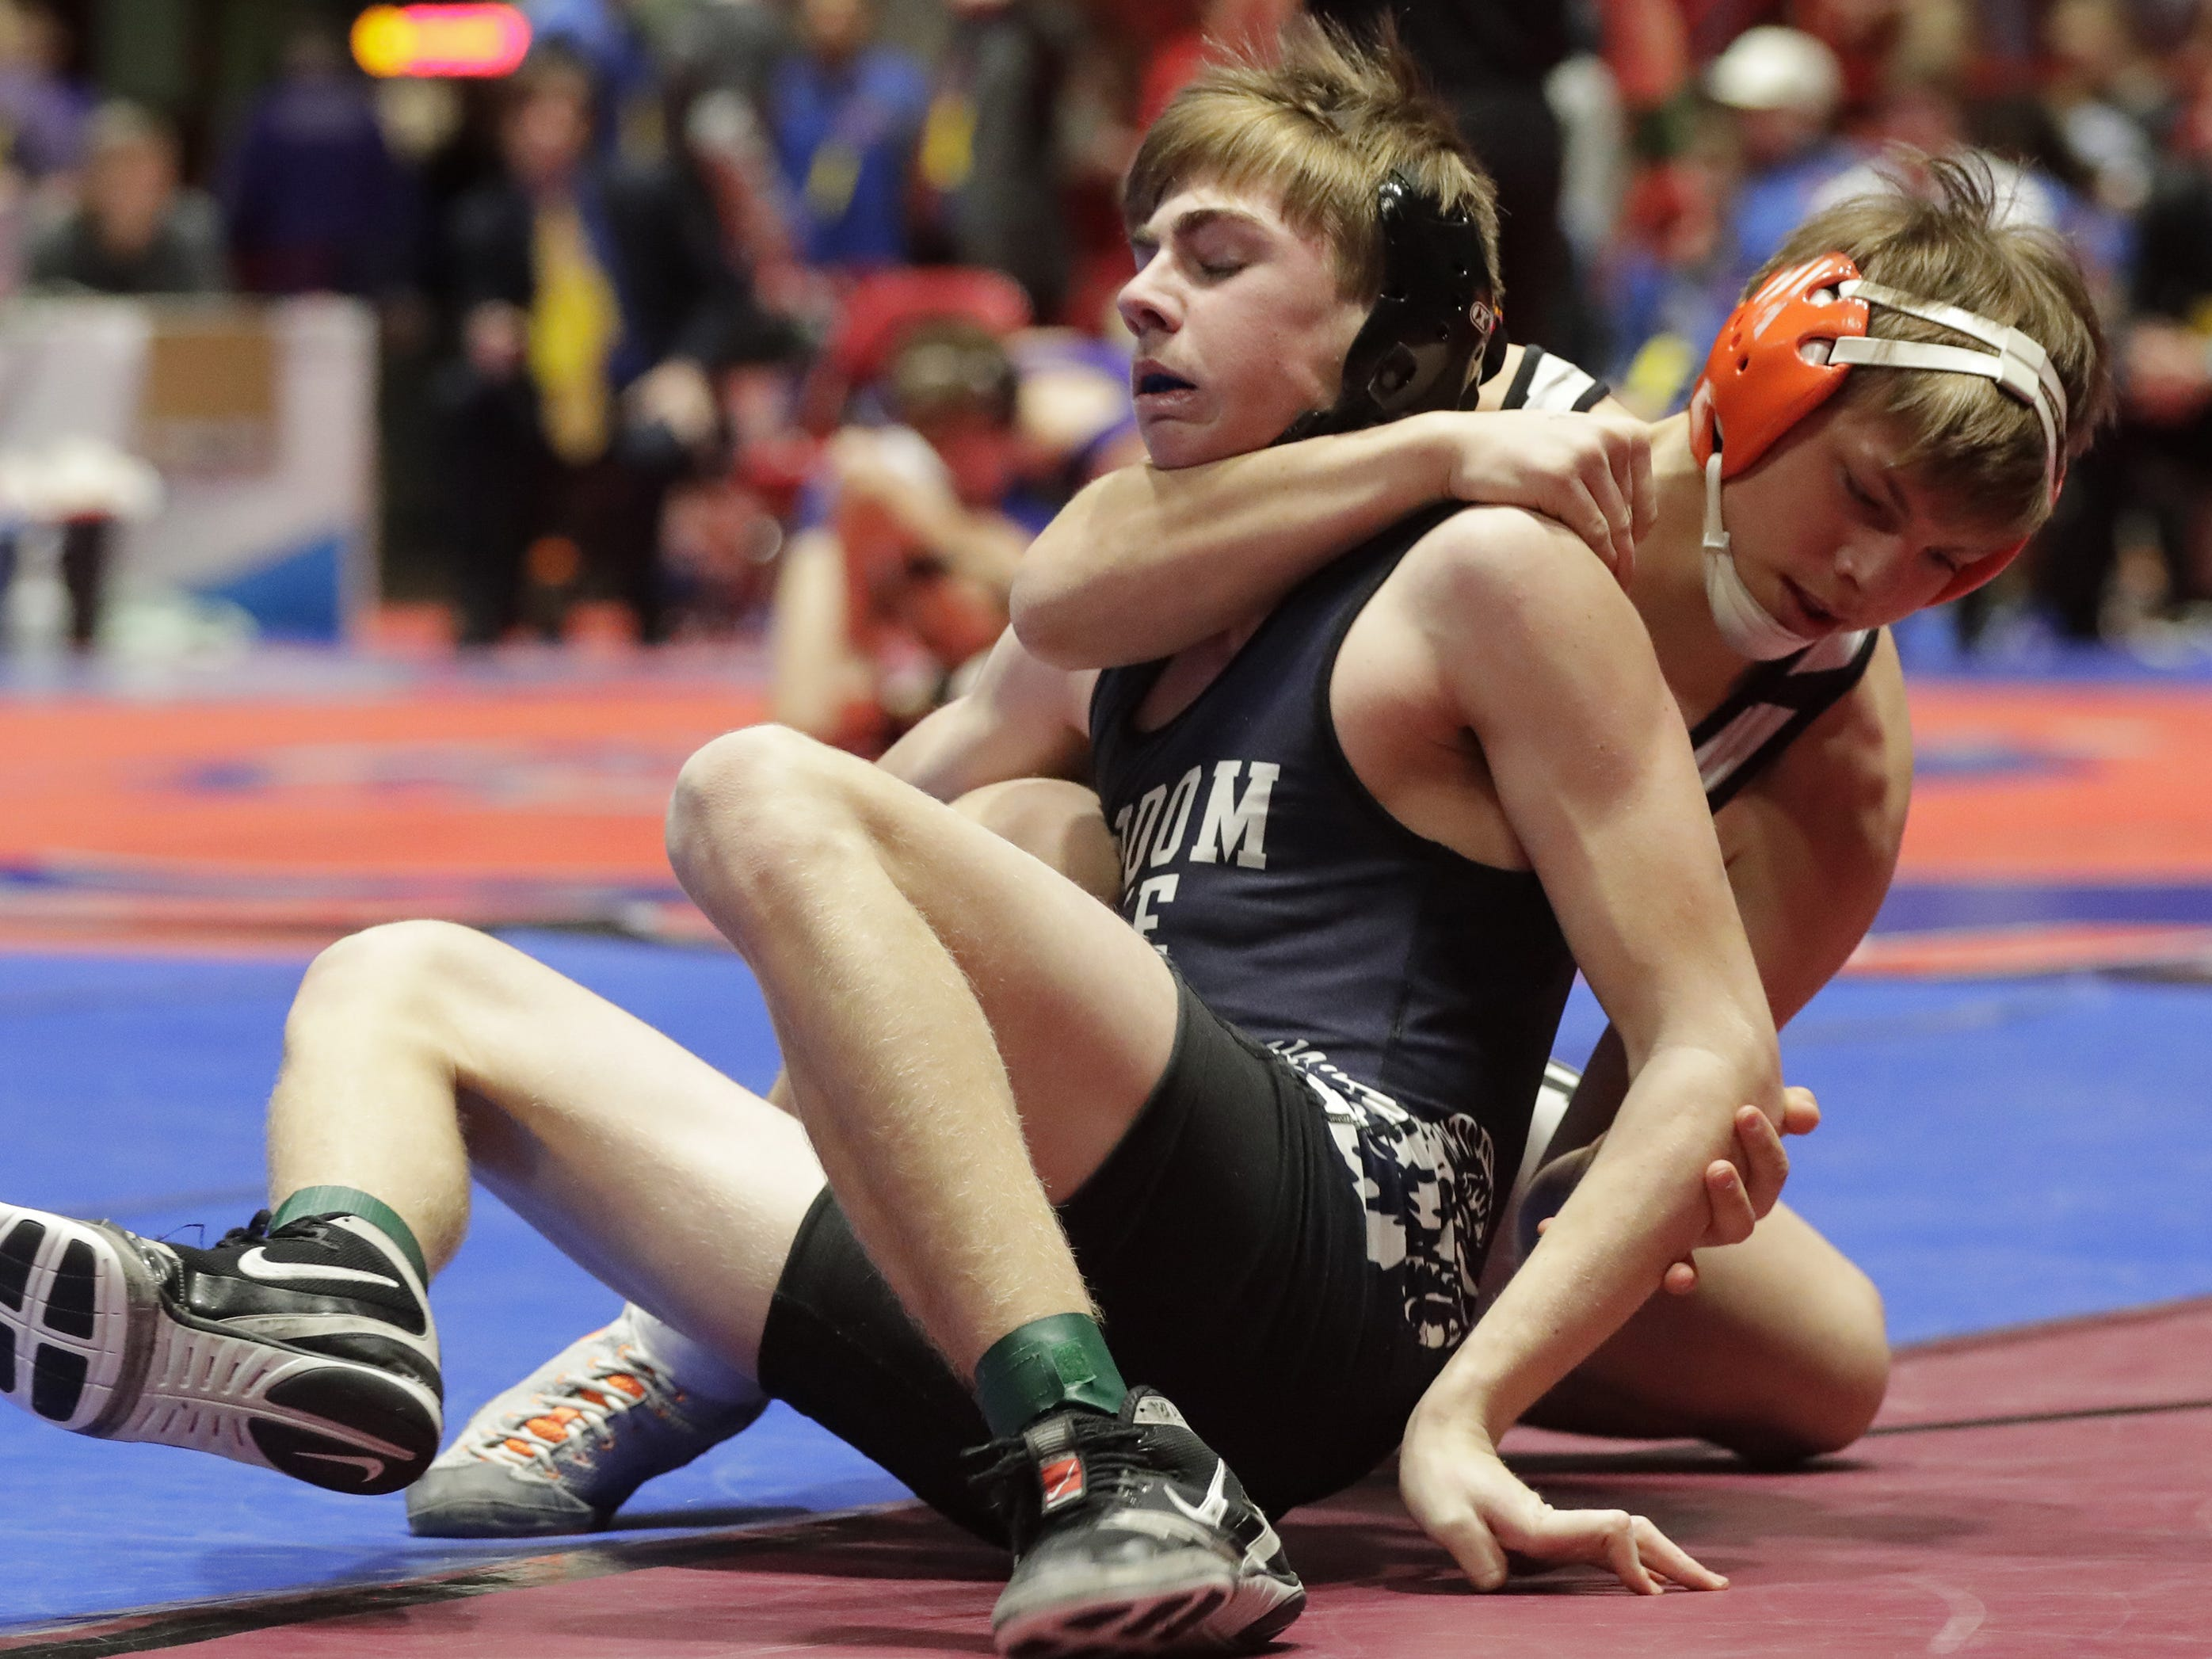 Stratford's Jacob Heiden, right, keeps a grip on Random Lake's Hayden Scholler during a 138-pound match, Saturday, March 2, 2019, in Madison, Wis.